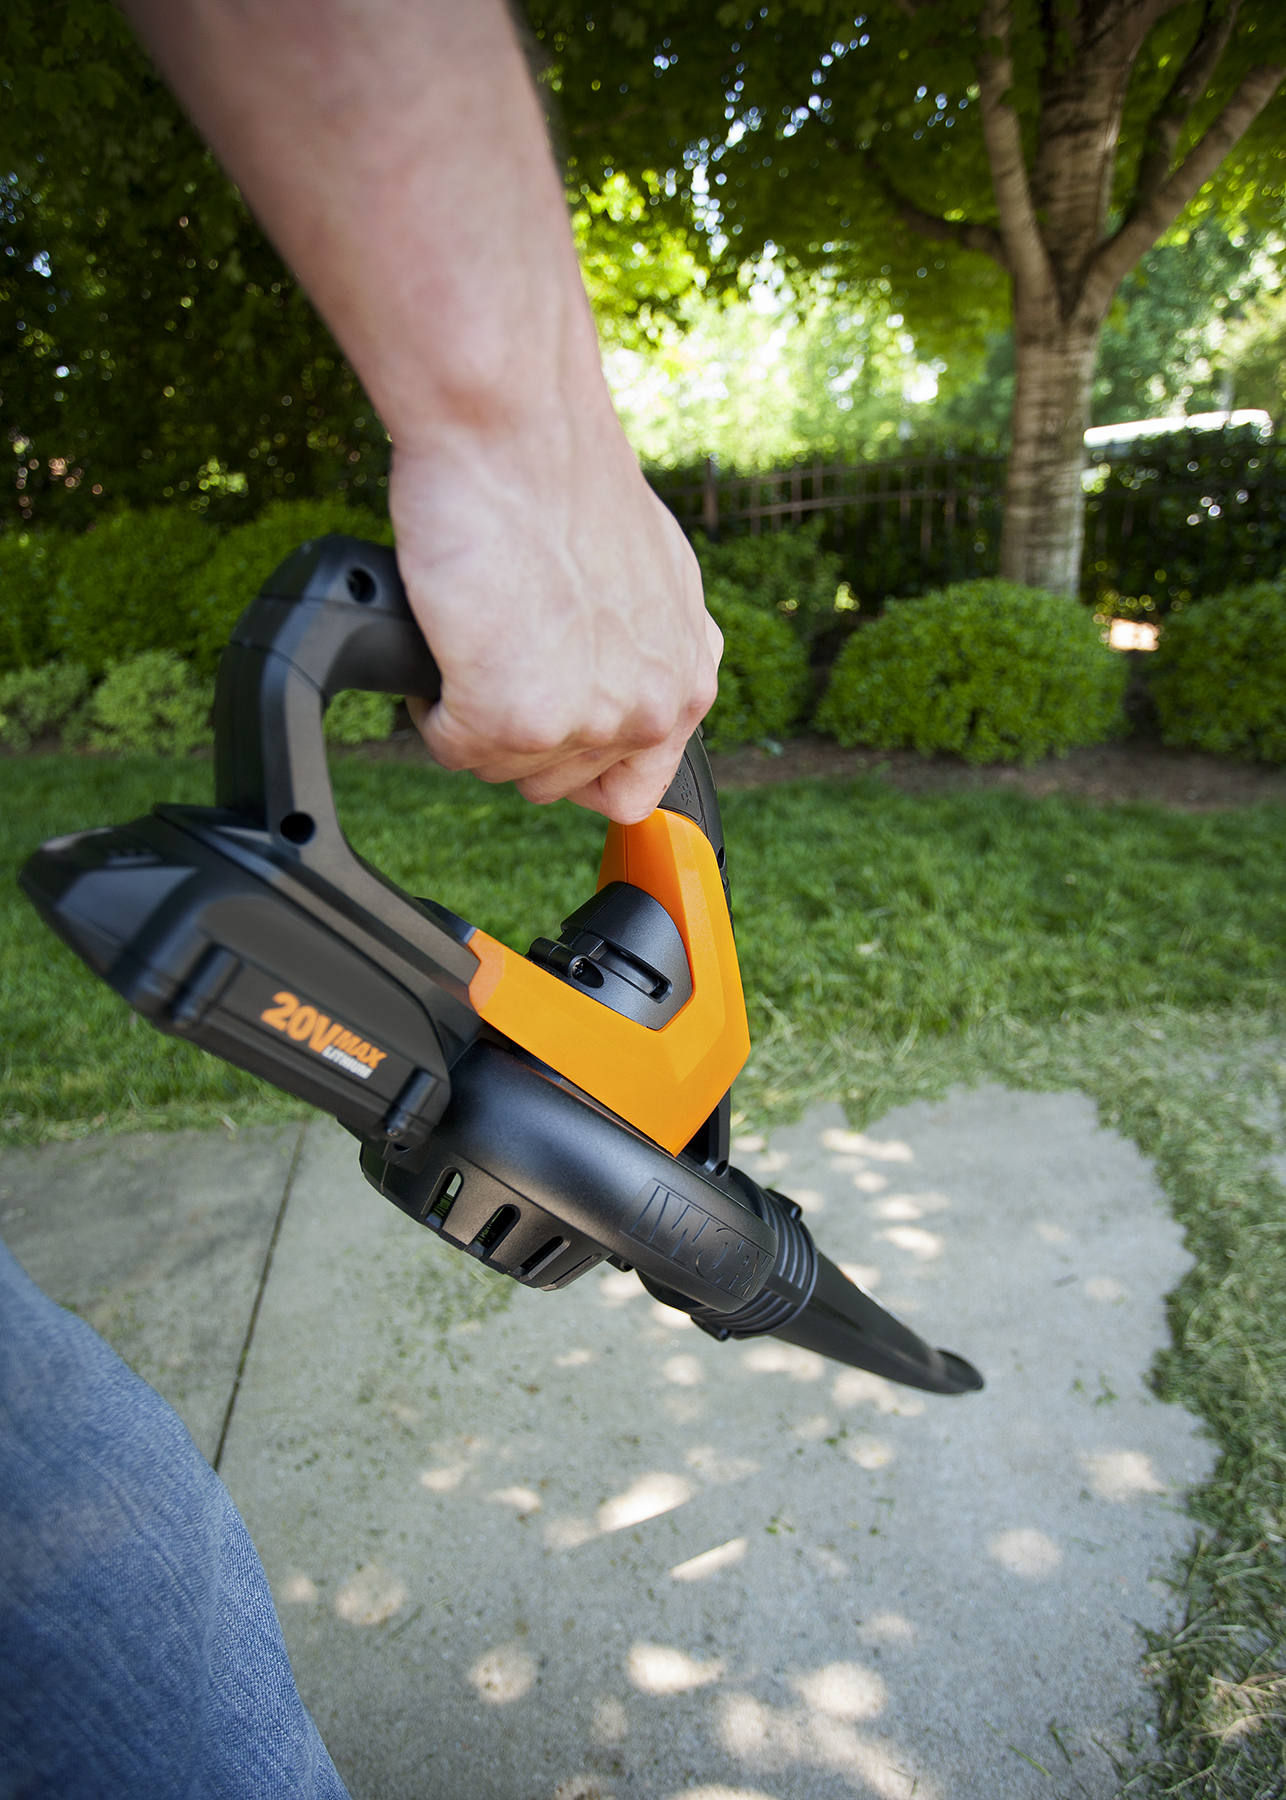 Worx Air Blower Sweeper With New Attachments Stops